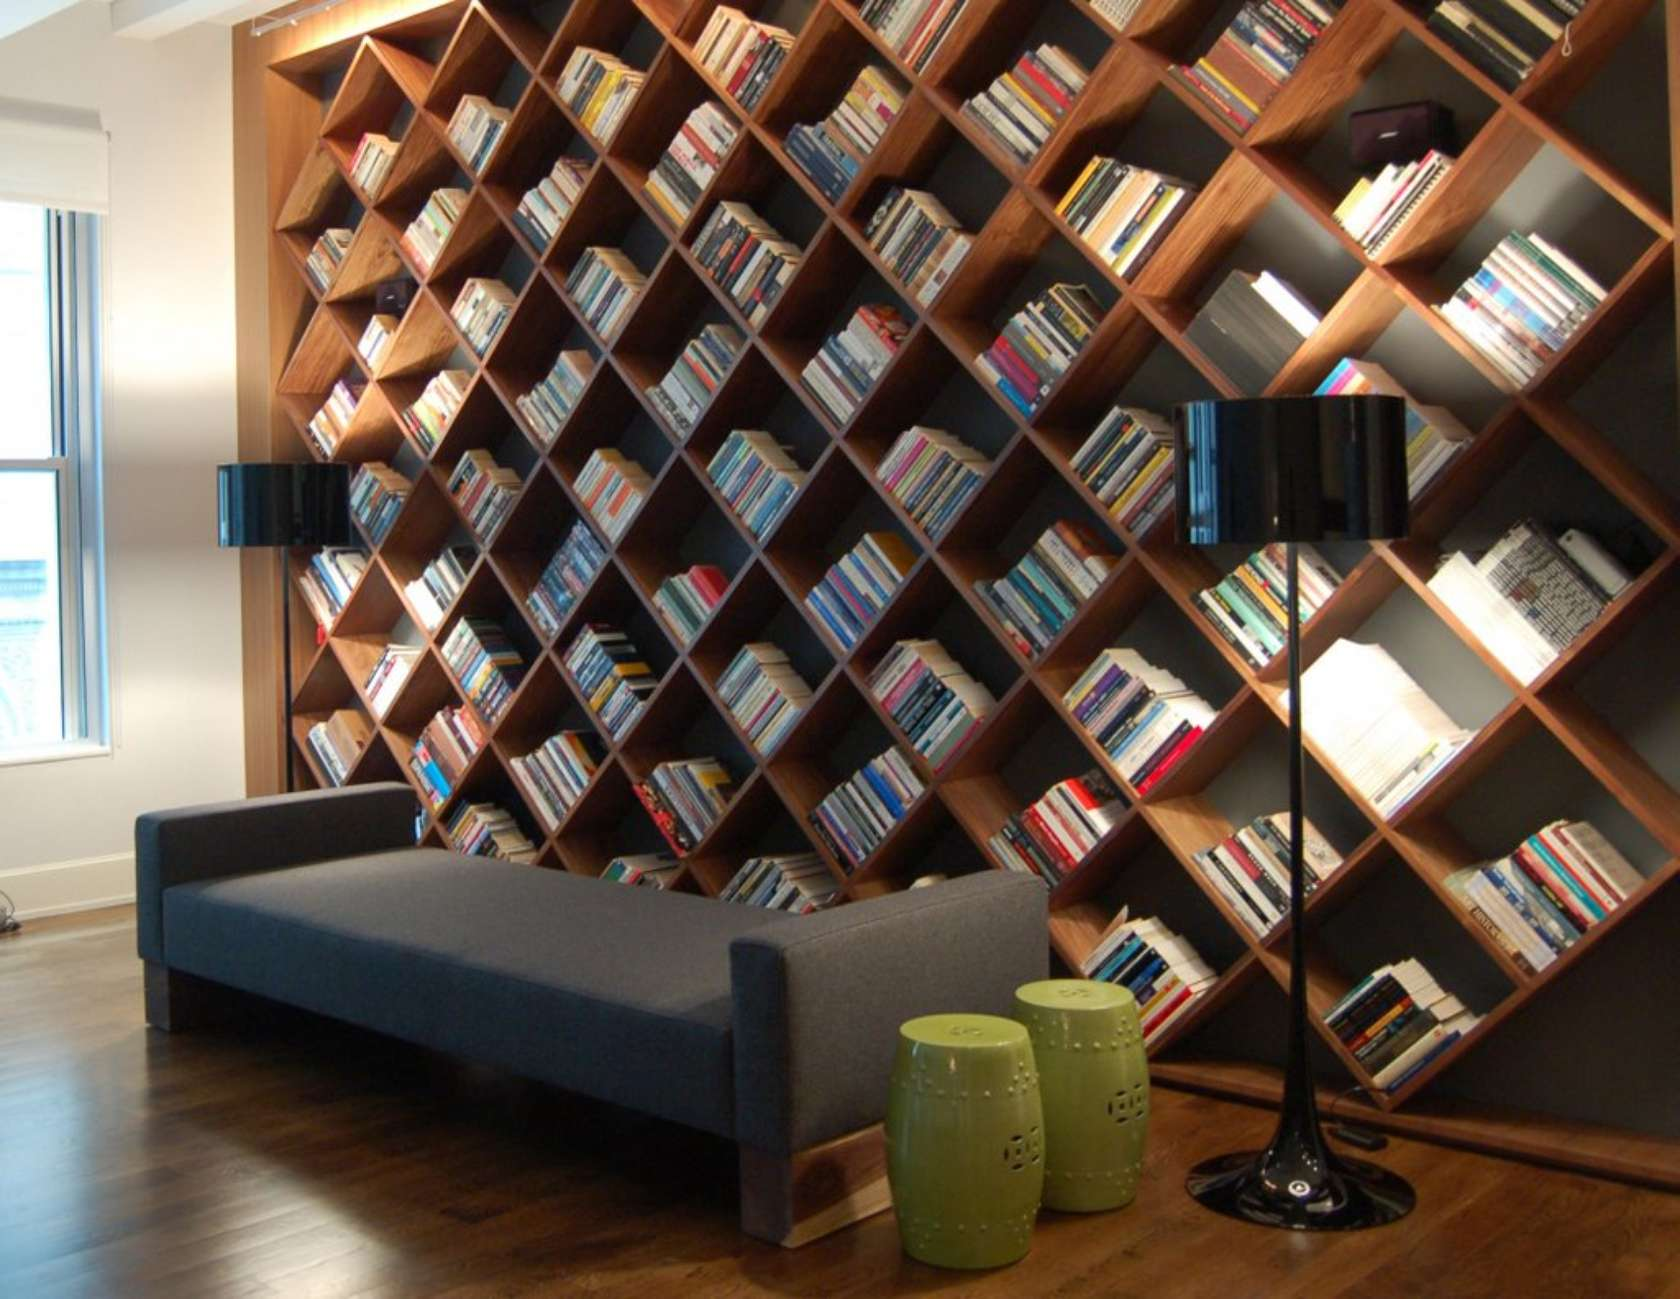 Library furniture design. ingenious design inconjunction wit.